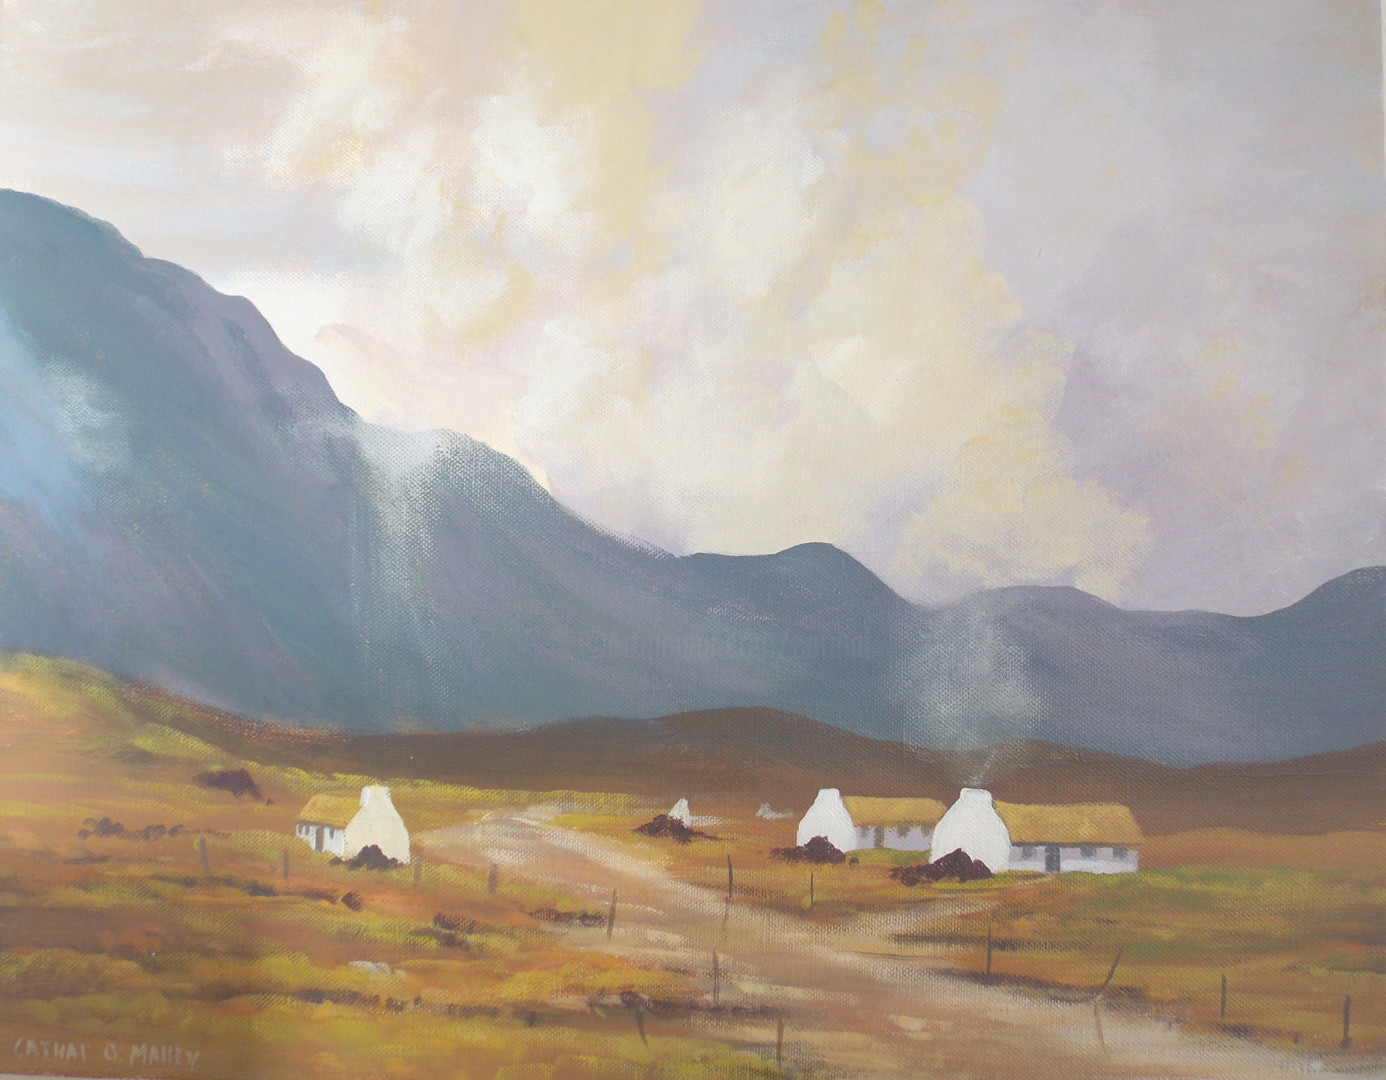 Cathal O Malley - valley light  oct